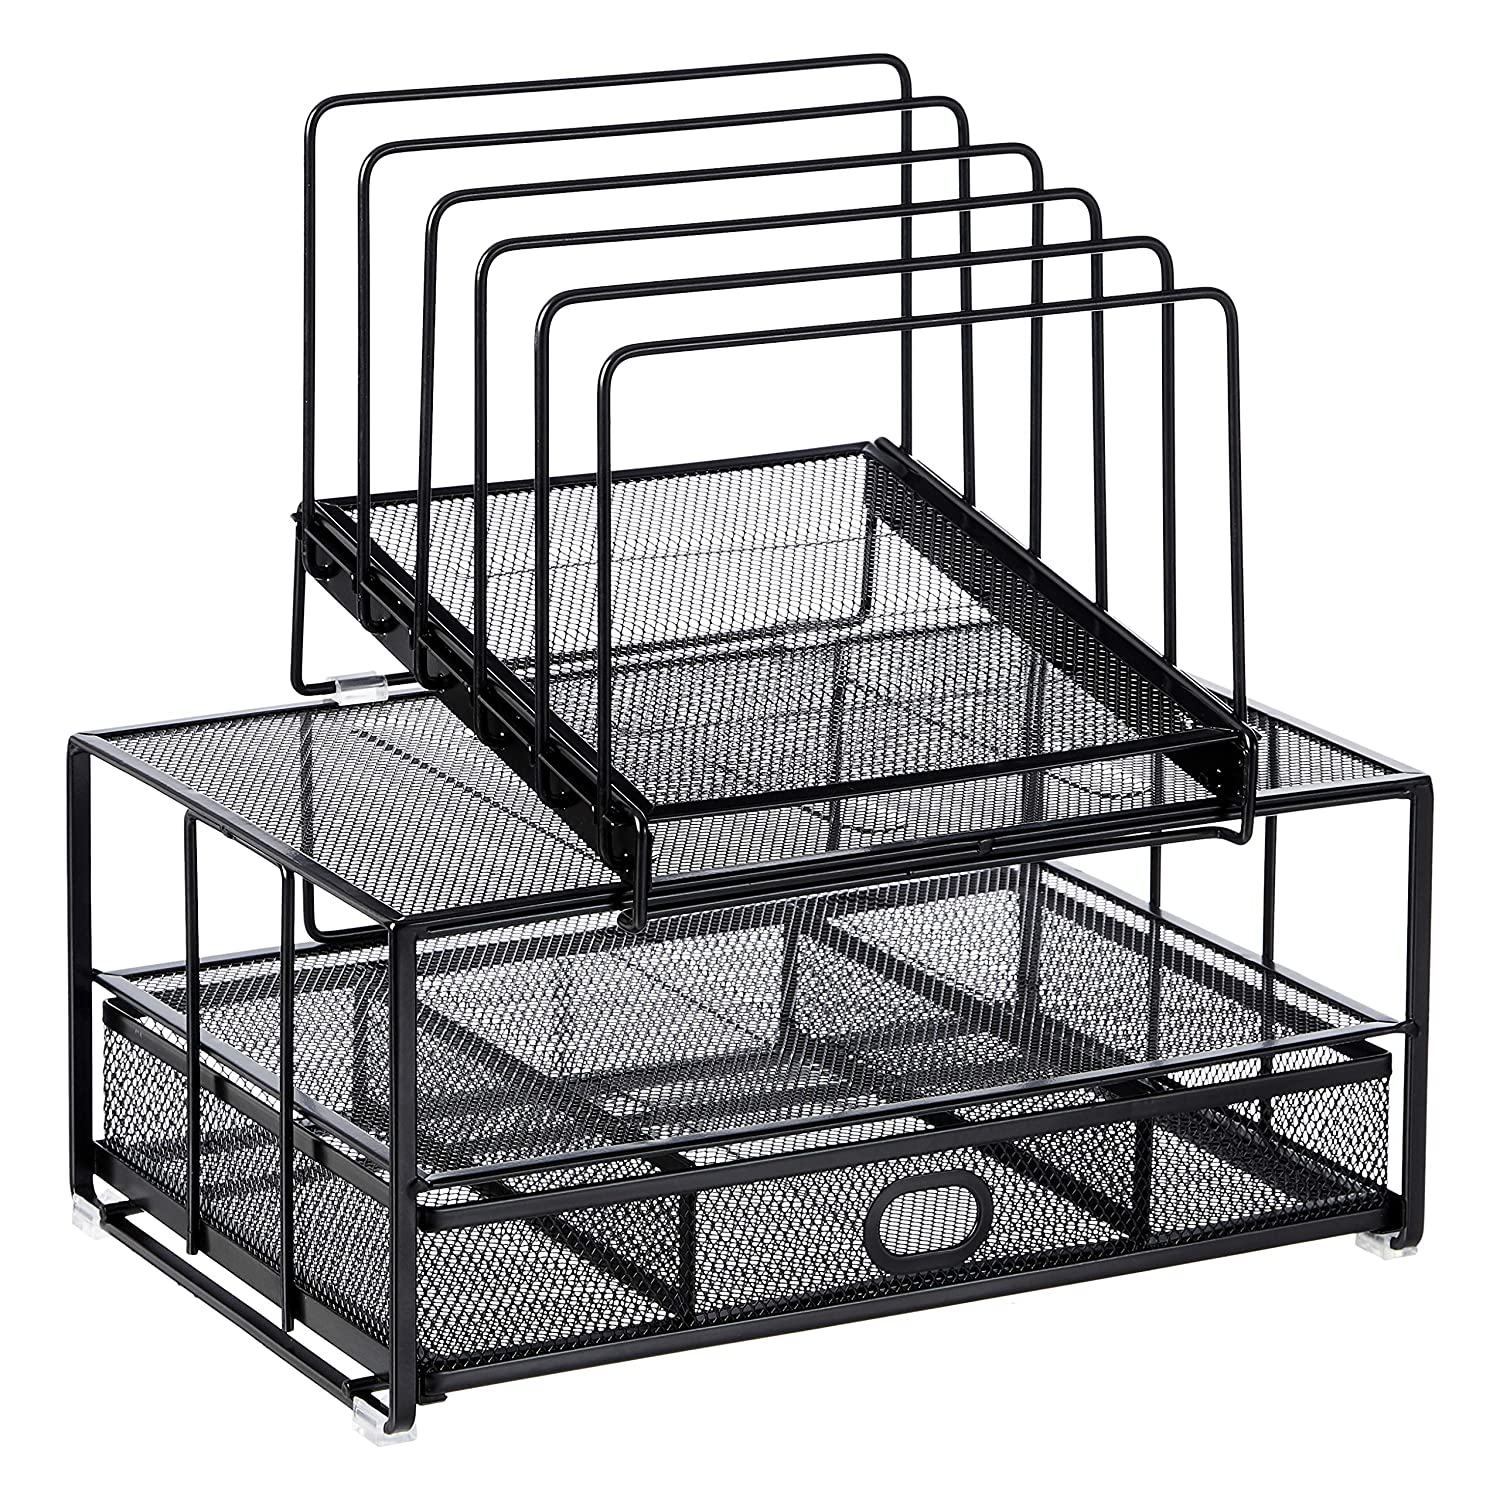 AmazonBasics Single Drawer Mesh Organizer